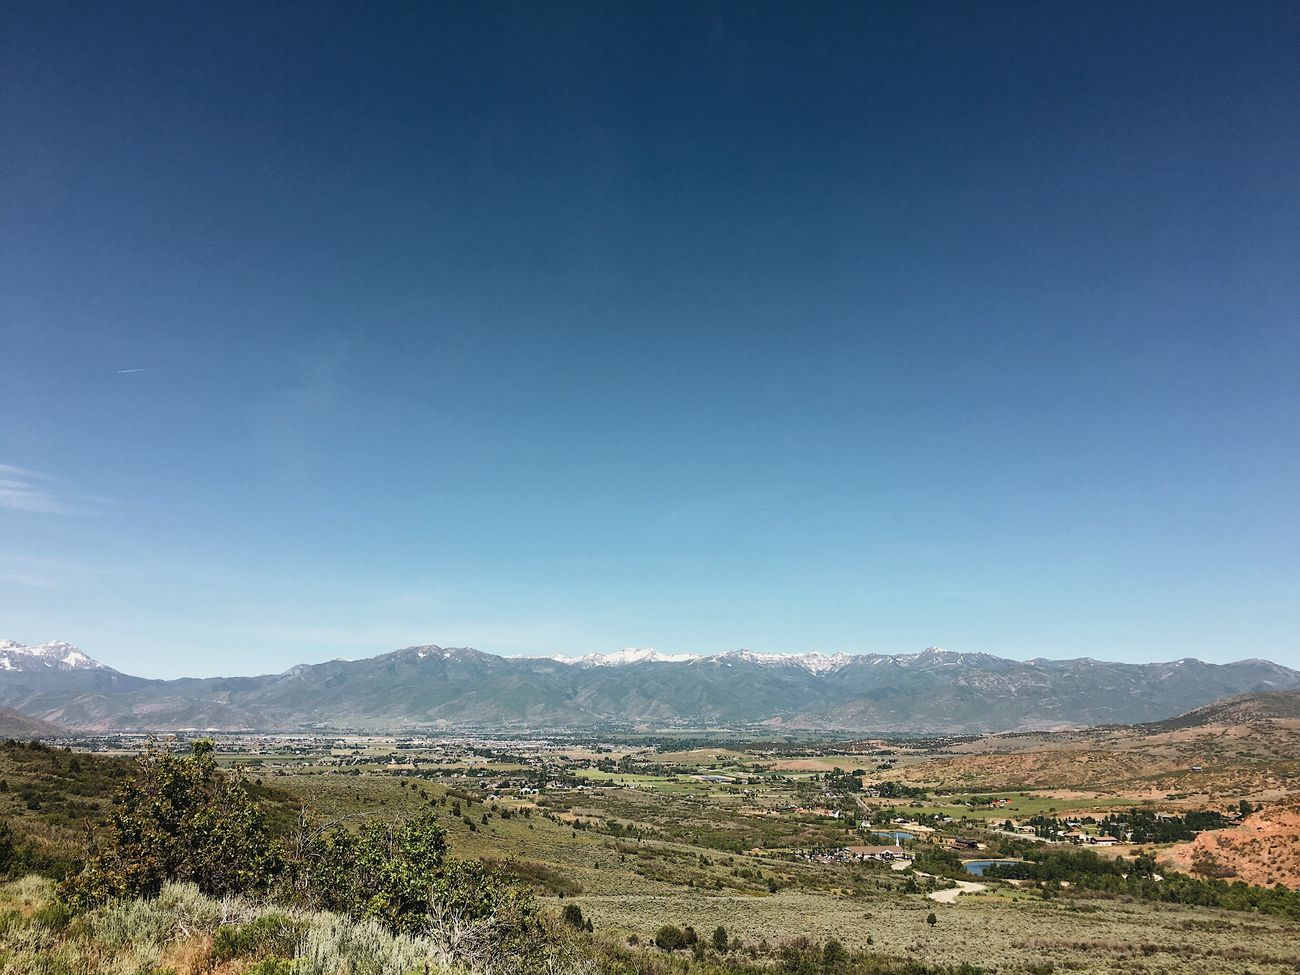 view from the run this morning. Heber City